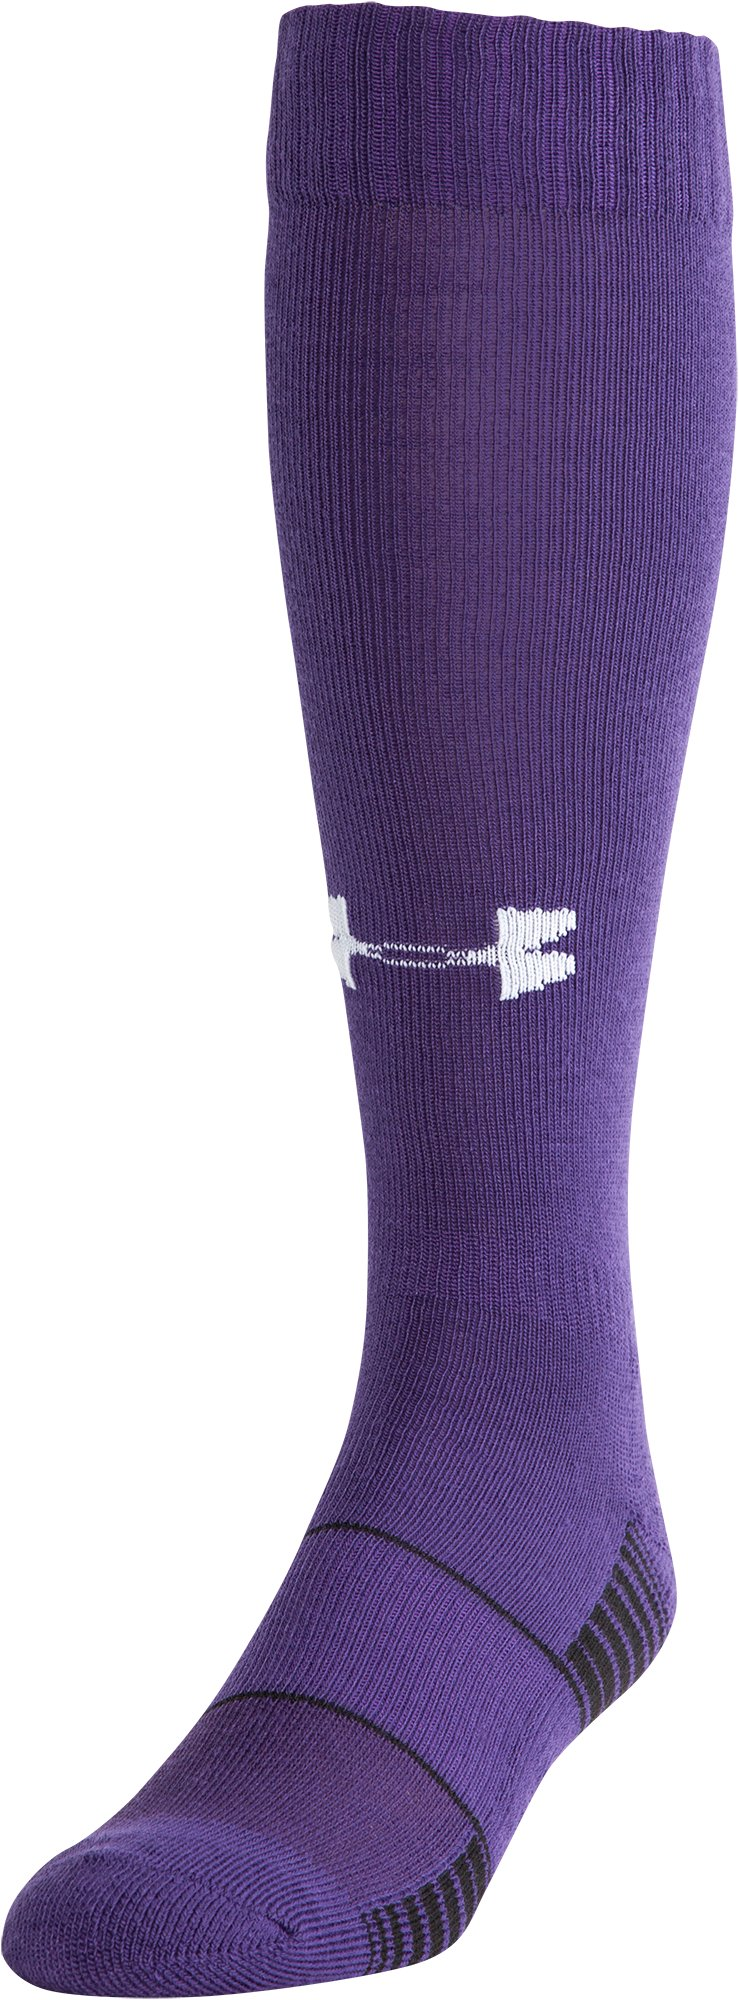 UA Over-The-Calf Team Socks, Purple, zoomed image